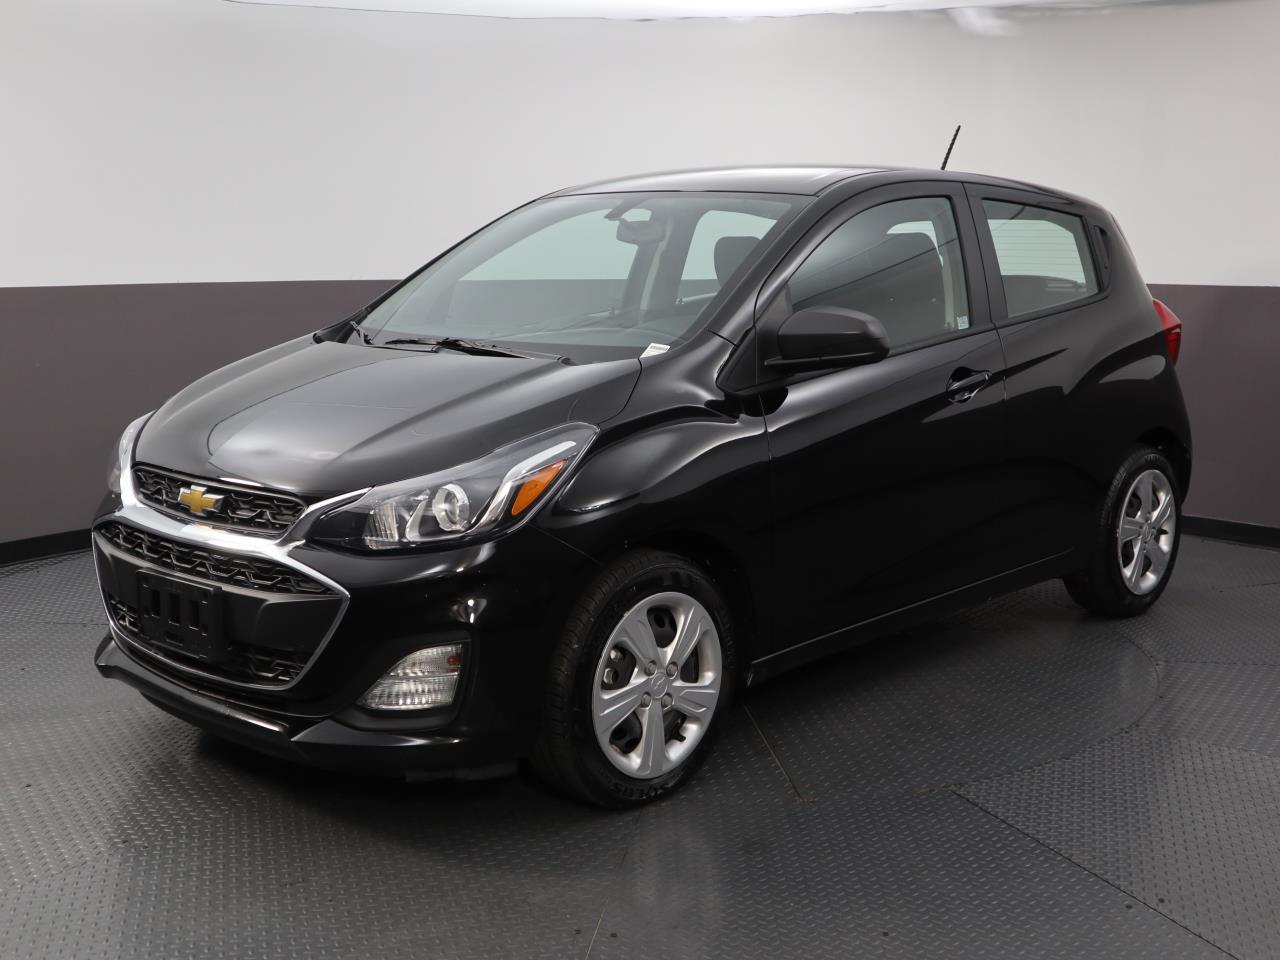 Used CHEVROLET SPARK 2020 WEST PALM LS